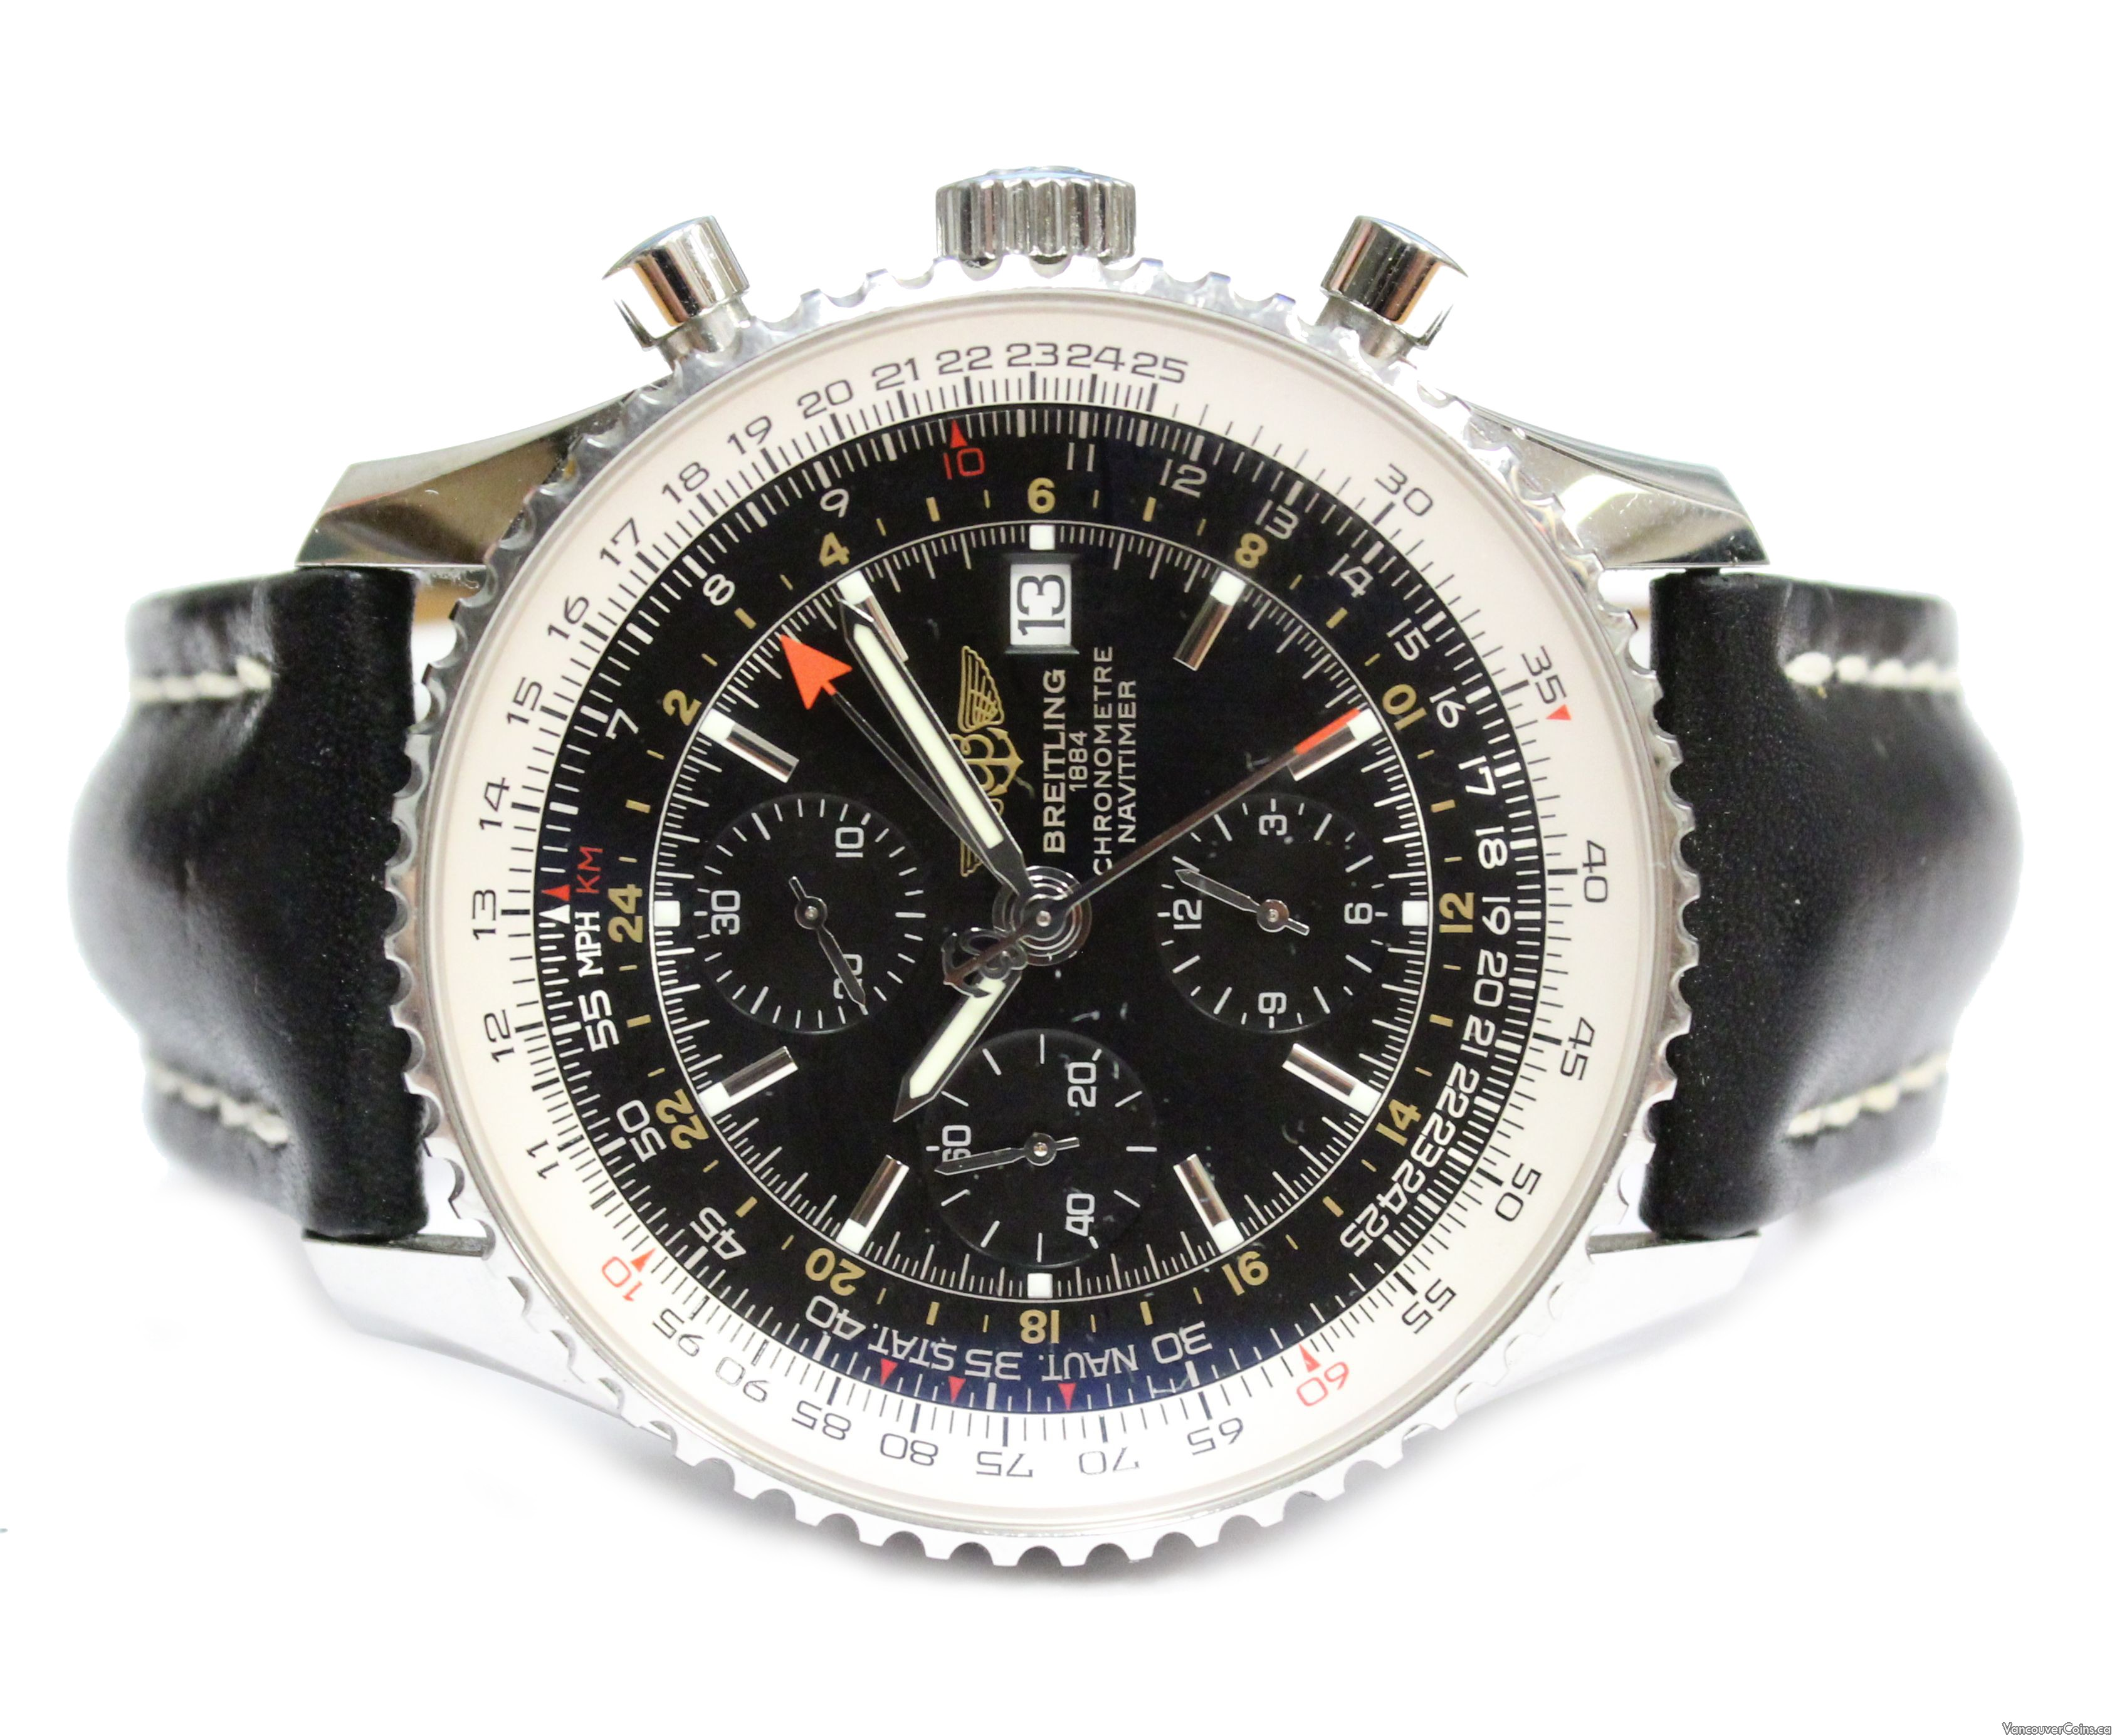 Breitling Navitimer A24322 GMT watch original black leather strap